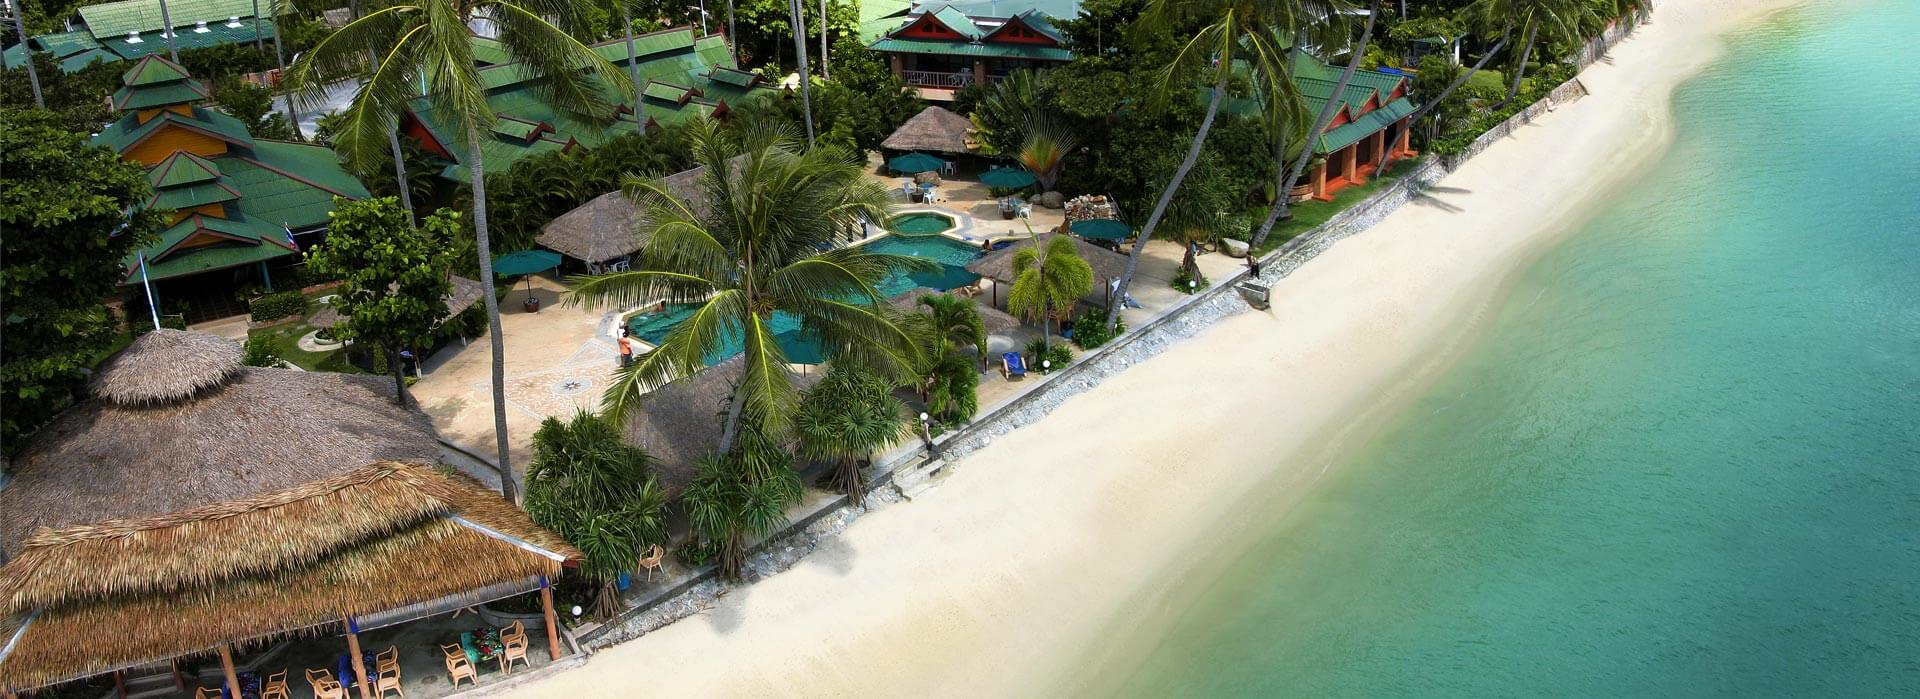 Friendship Beach Resort & Spa in Rawai Phuket